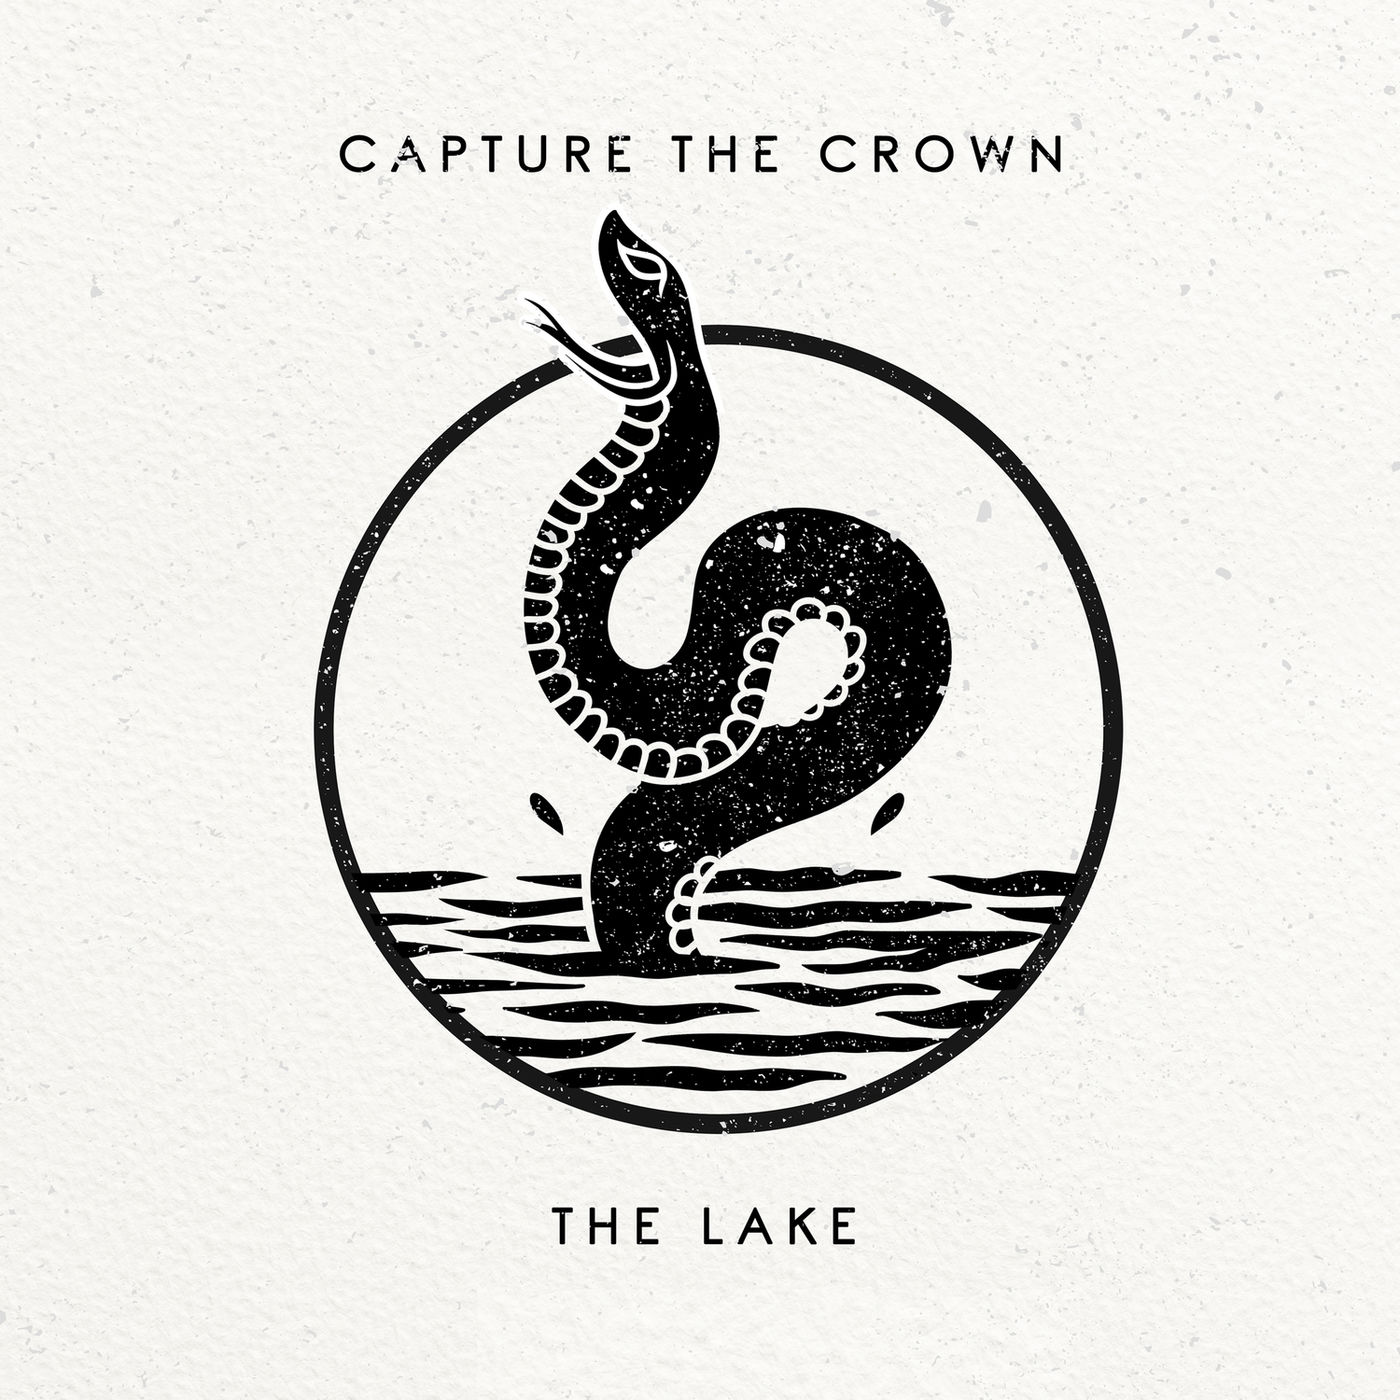 Capture the crown til death download mp3